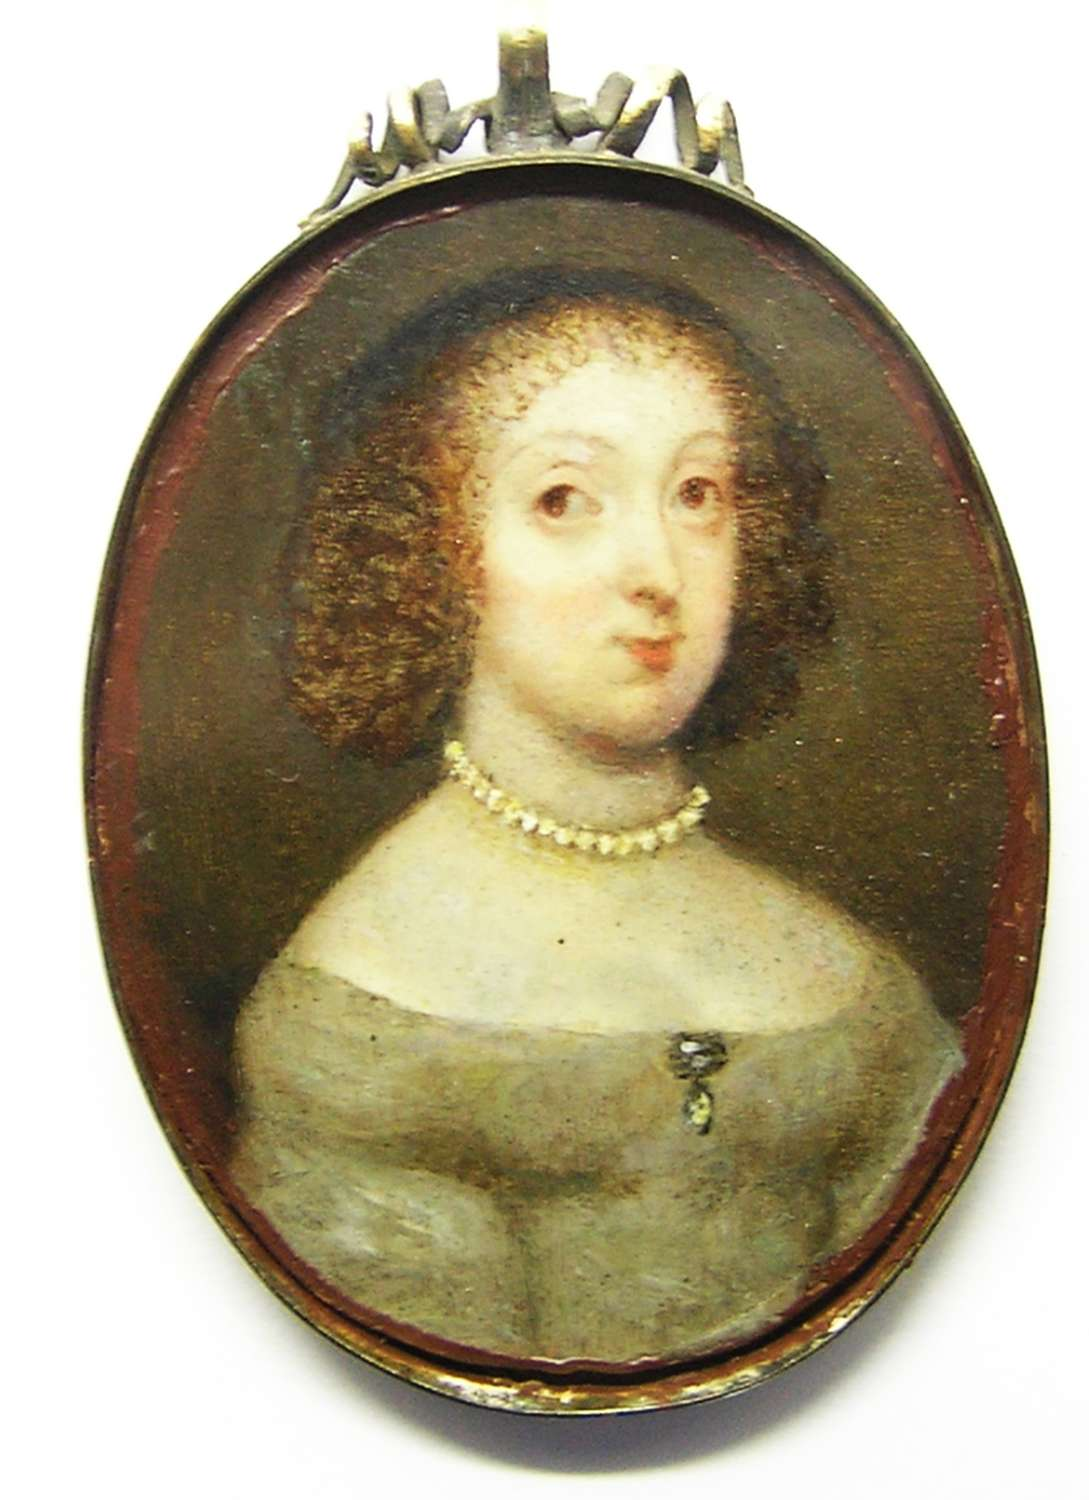 Framed Baroque portrait miniature of a lady